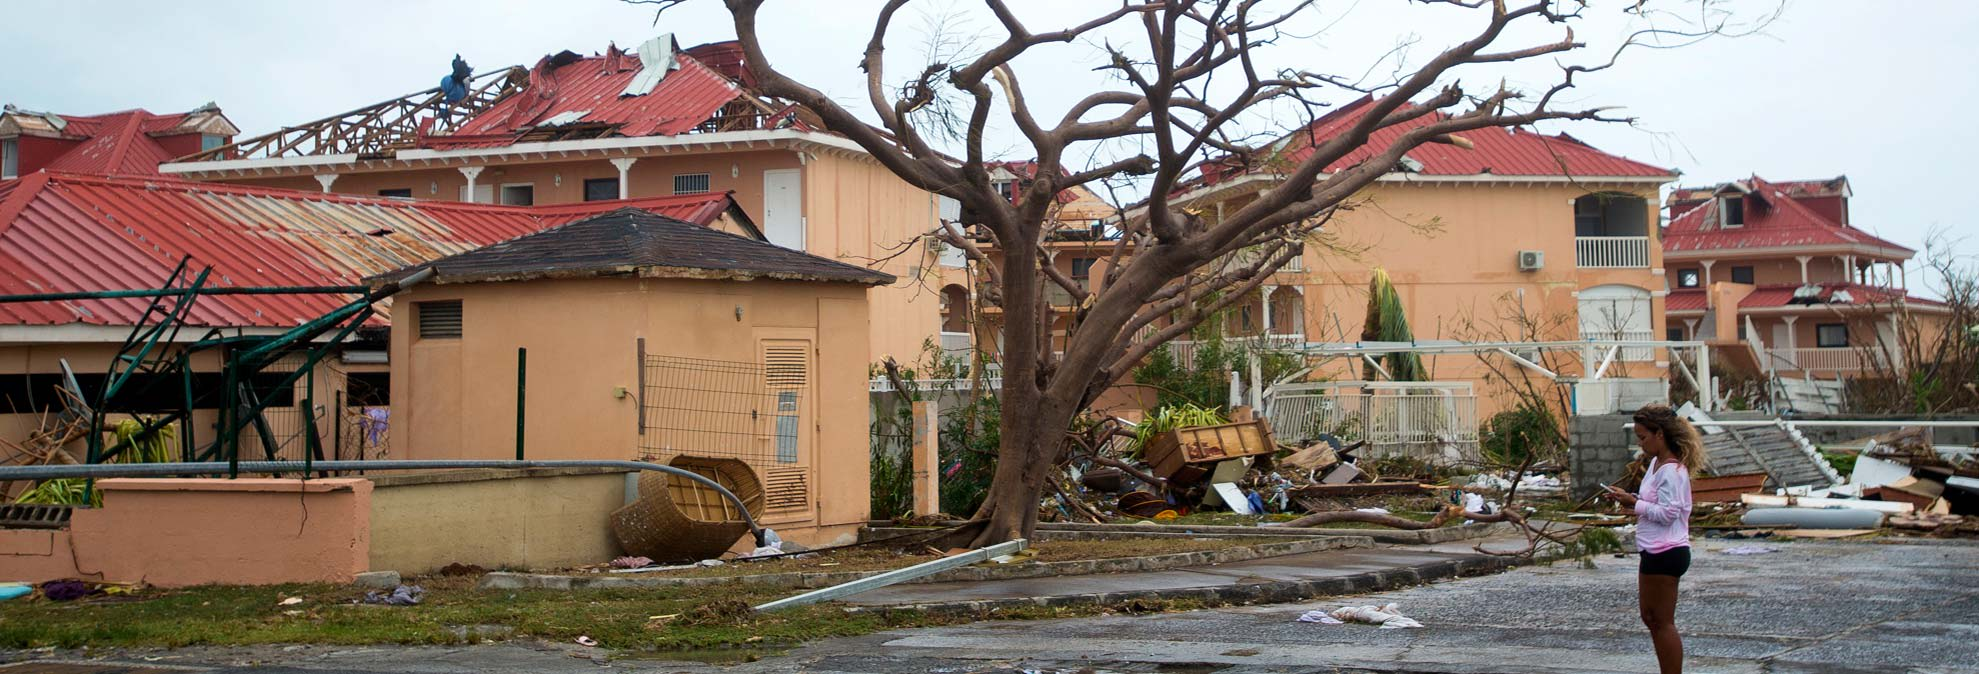 8 Strategies to Get the Most From Your Homeowners Insurance After a Hurricane